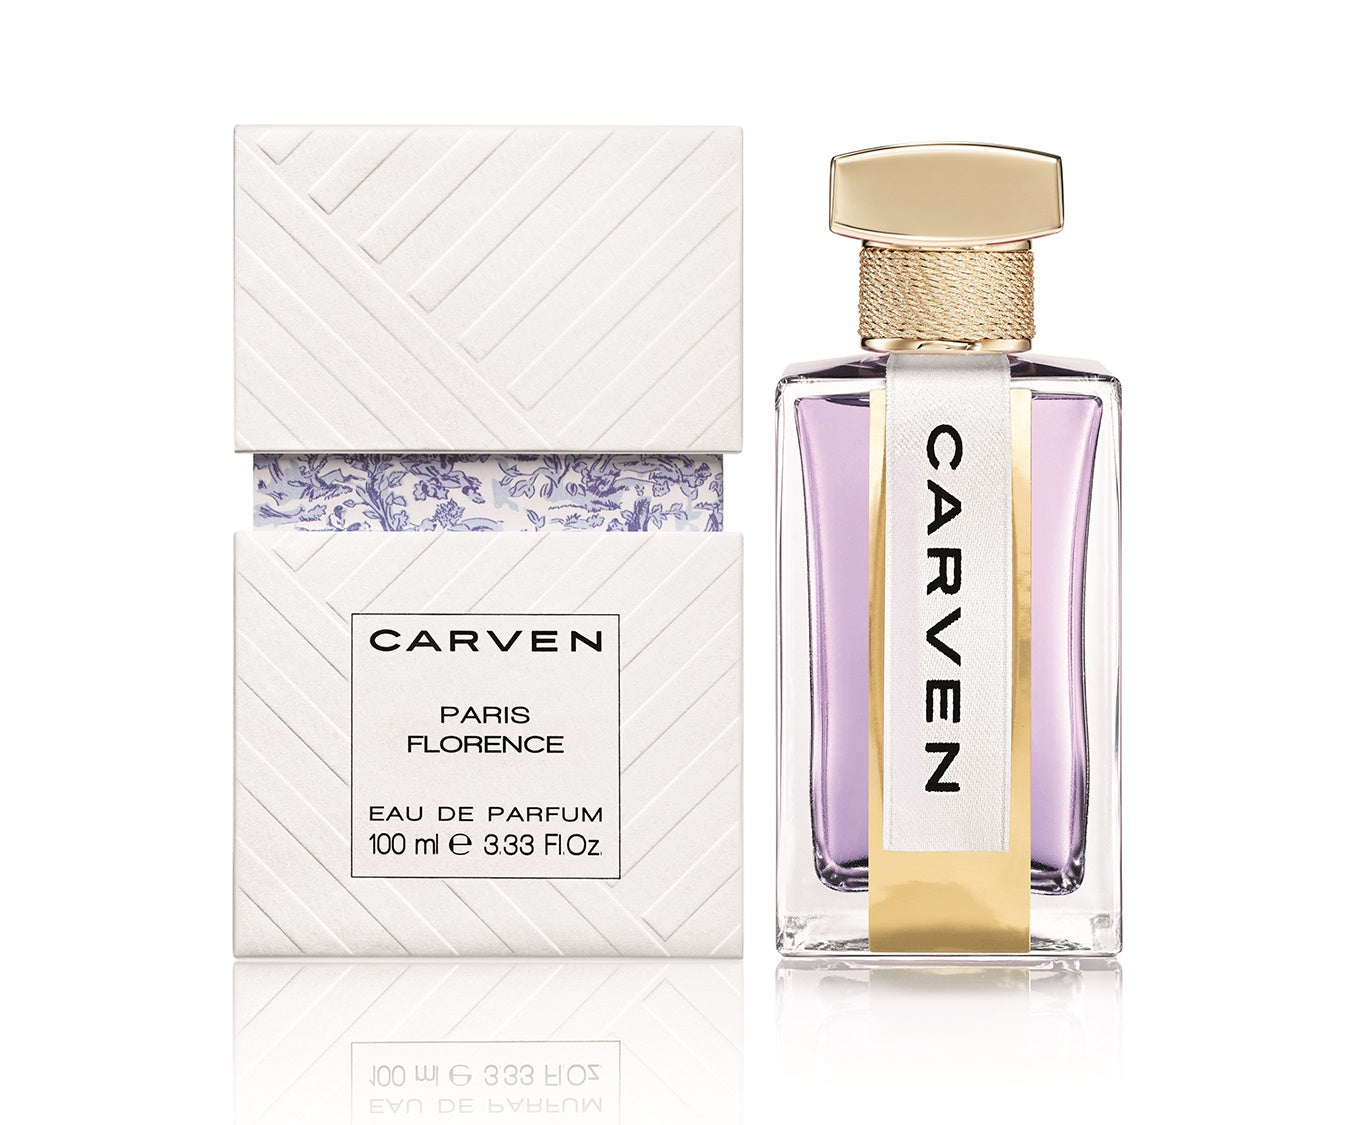 CARVEN Florence 100ml EDP